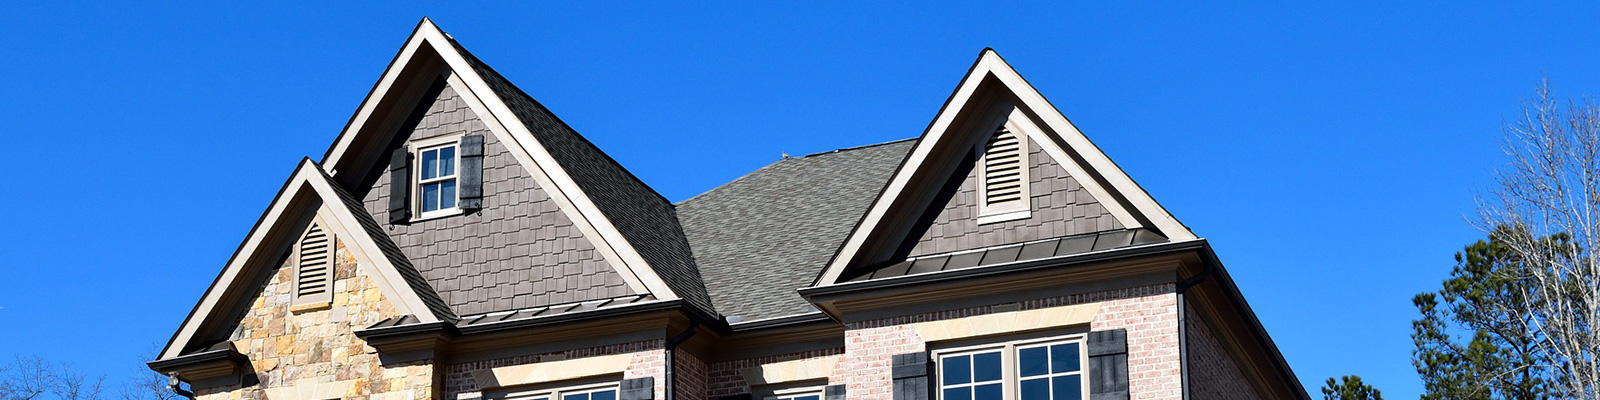 Roofing in Aurora, CO